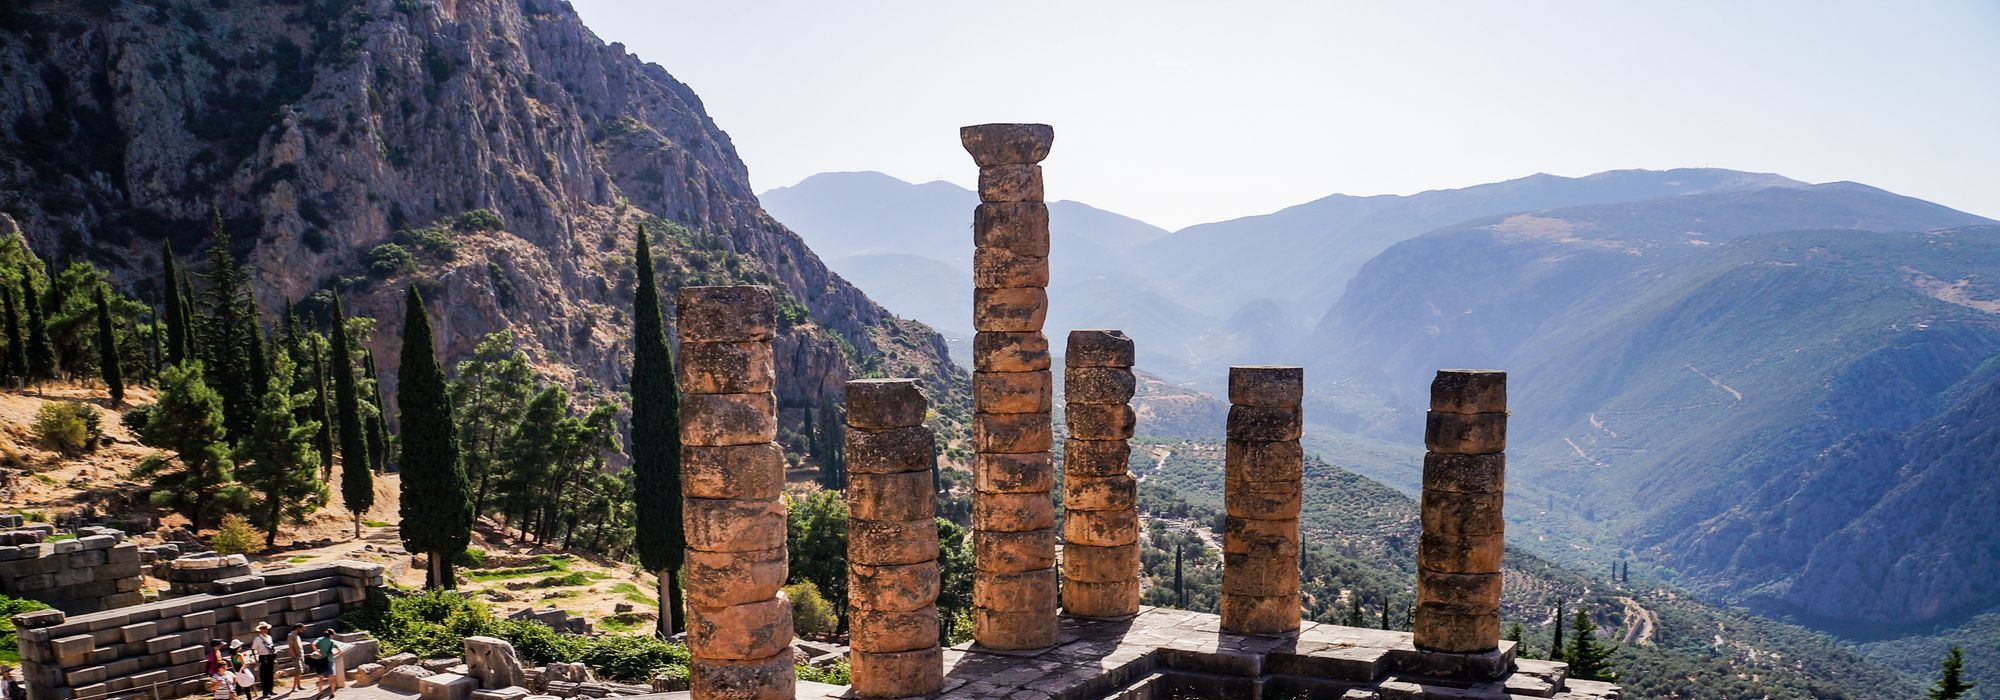 The remains of the Temple of Apollo